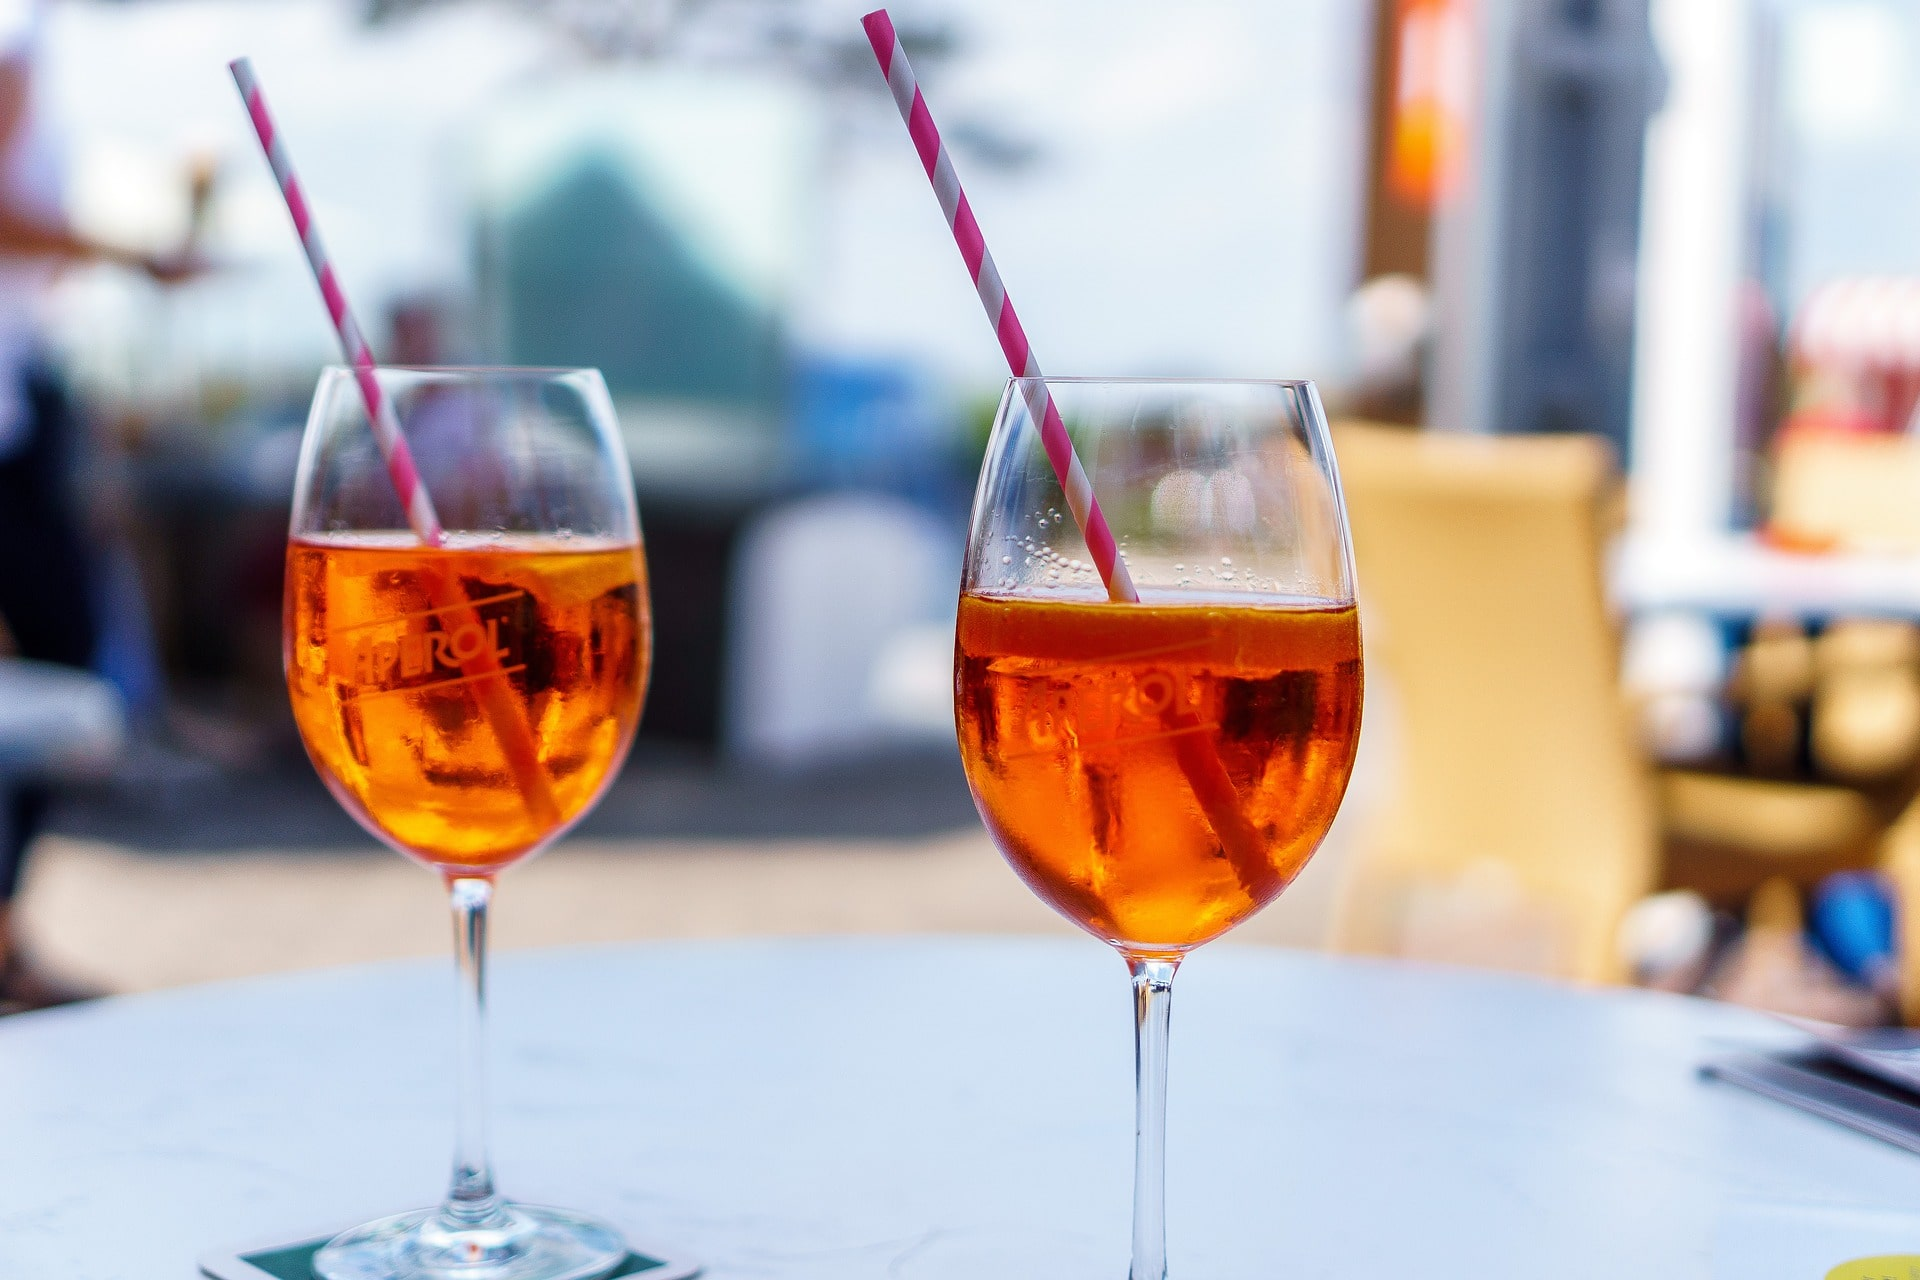 Water in Italy is safe (even though you may drink mostly aperol spritz)